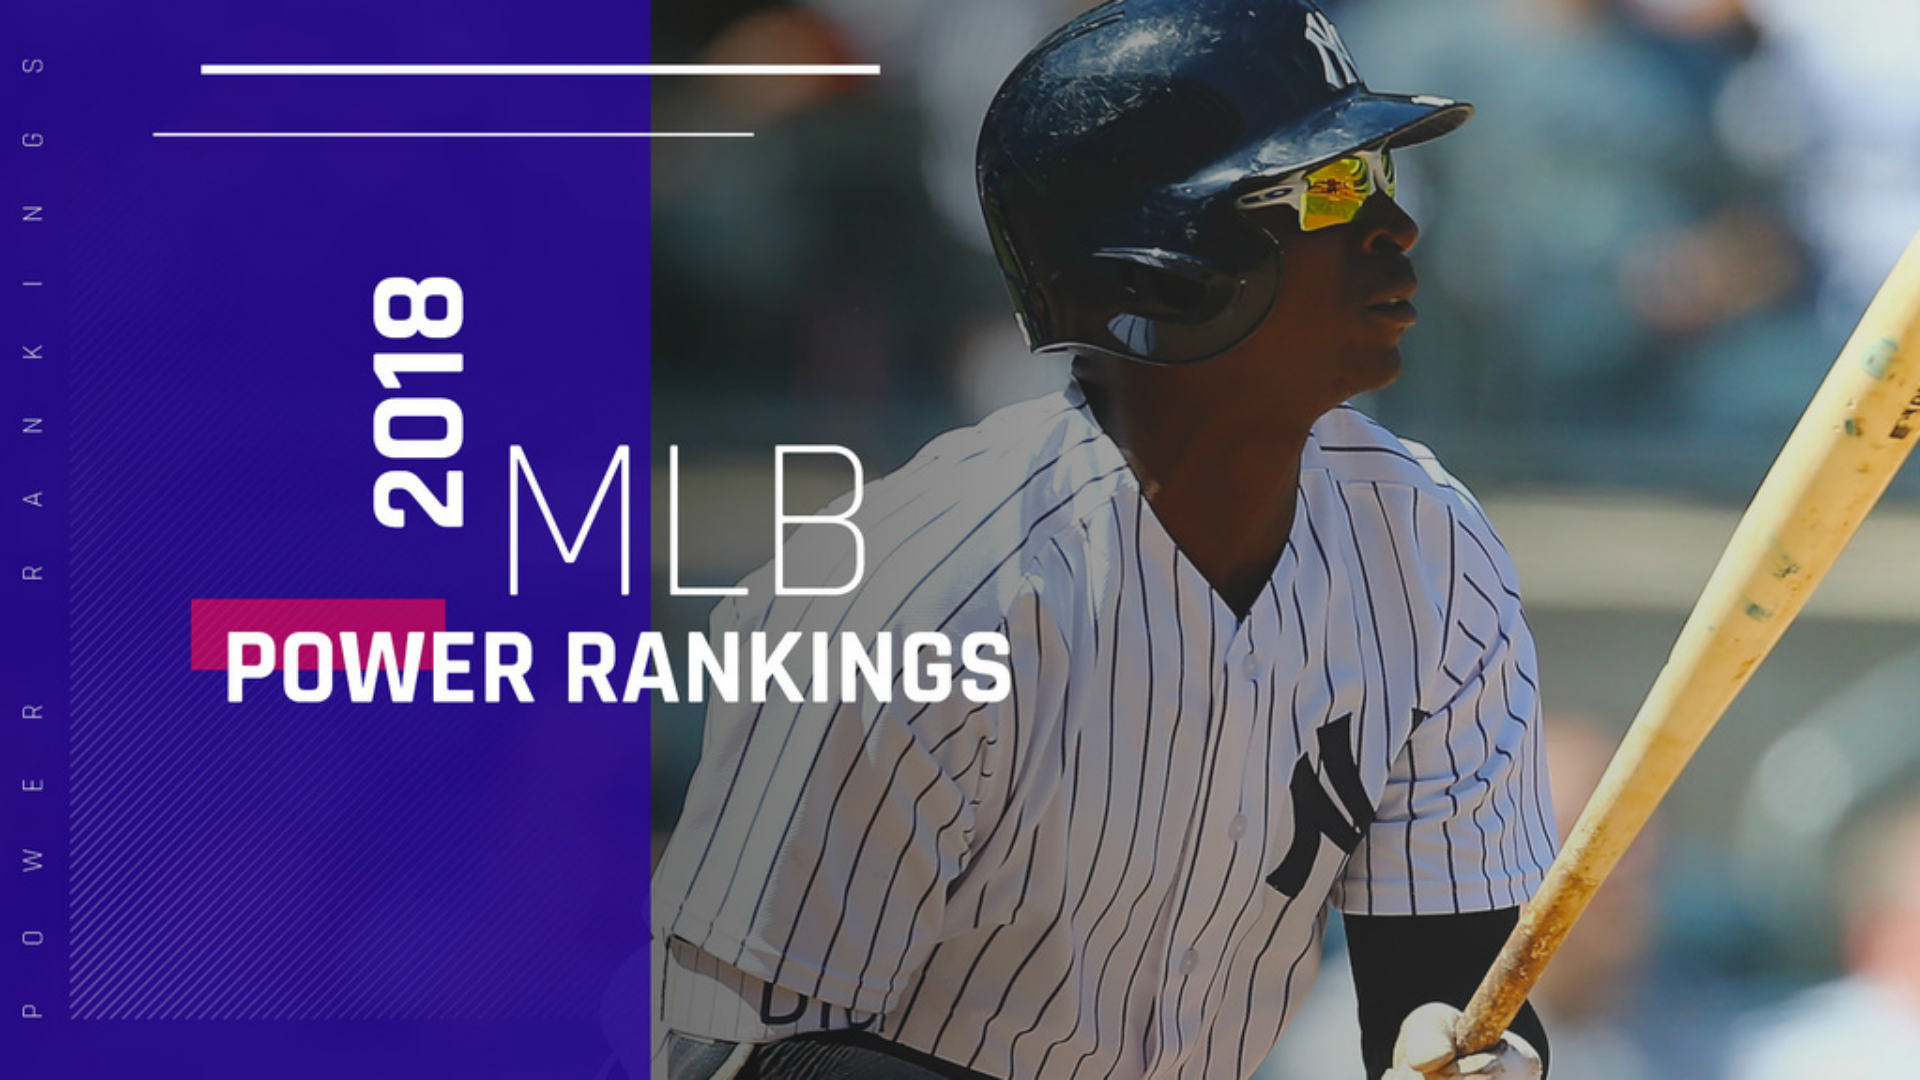 MLB Power Rankings: Yankees, Red Sox, Astros vie for top spot; Dodgers fall out of top 10